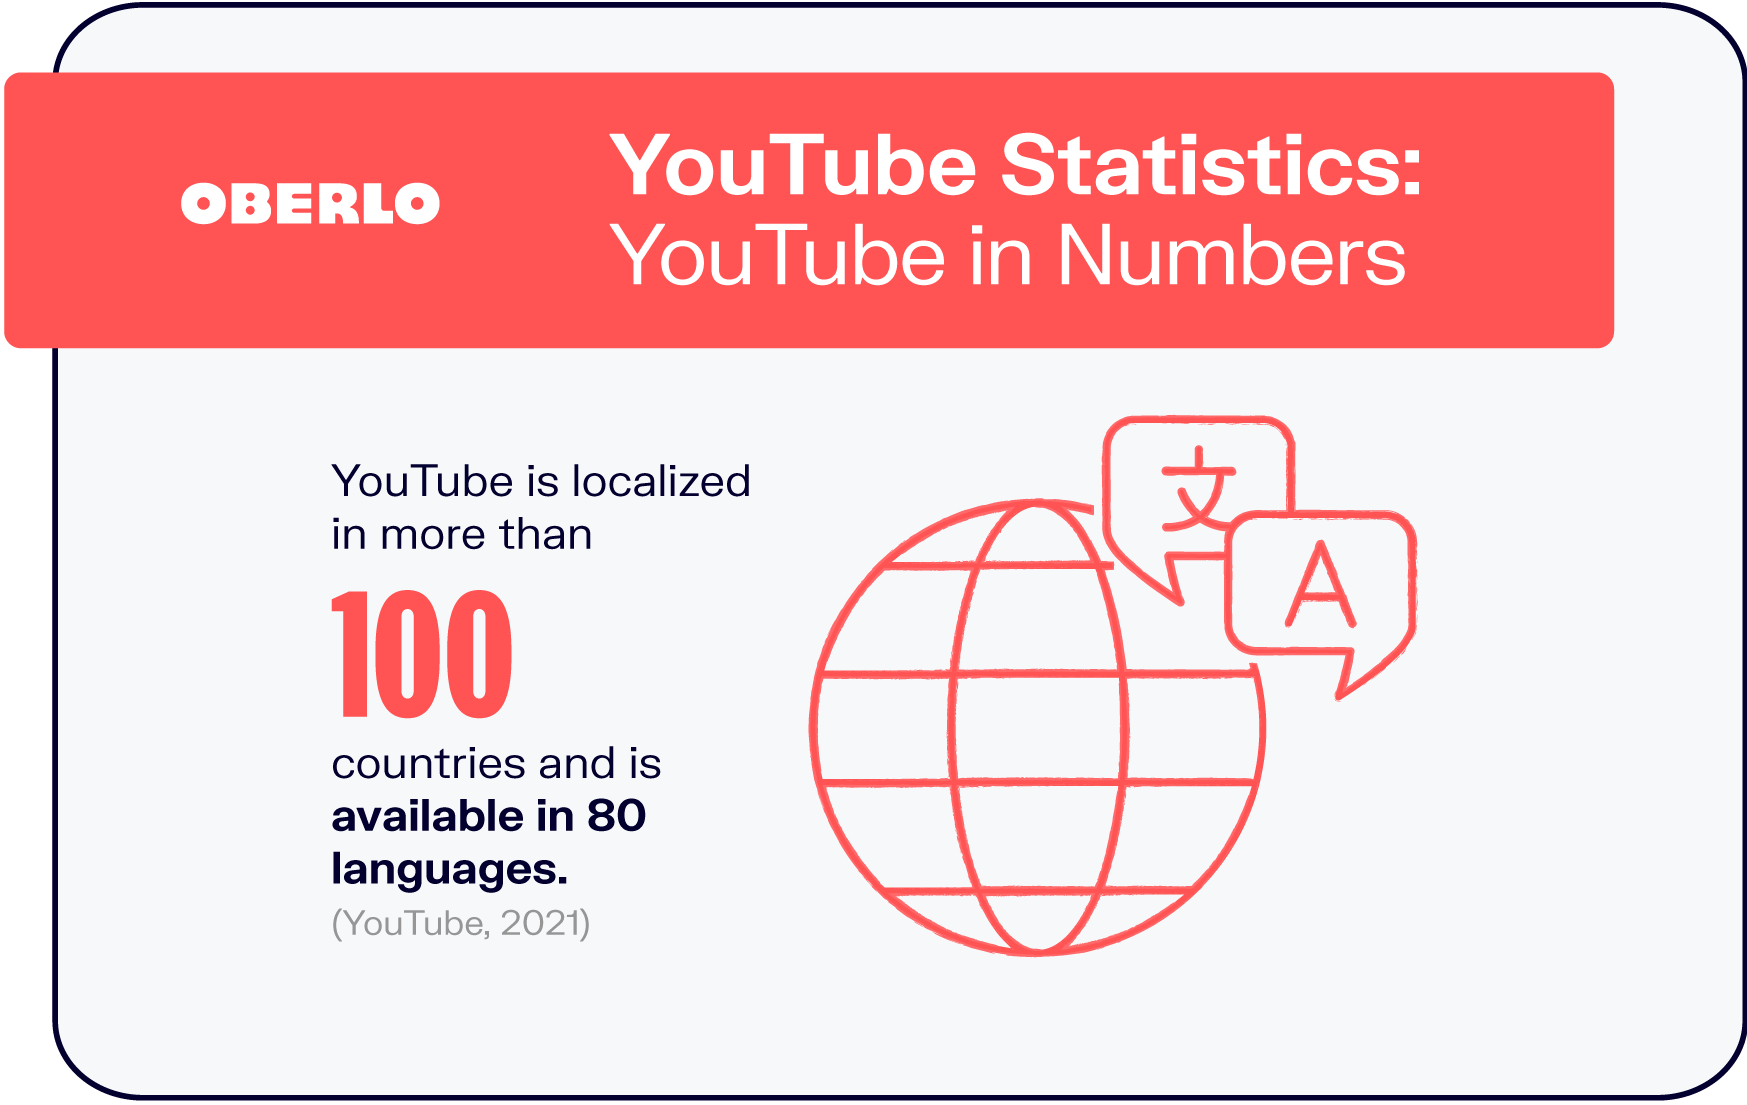 YouTube Statistics: YouTube in Numbers